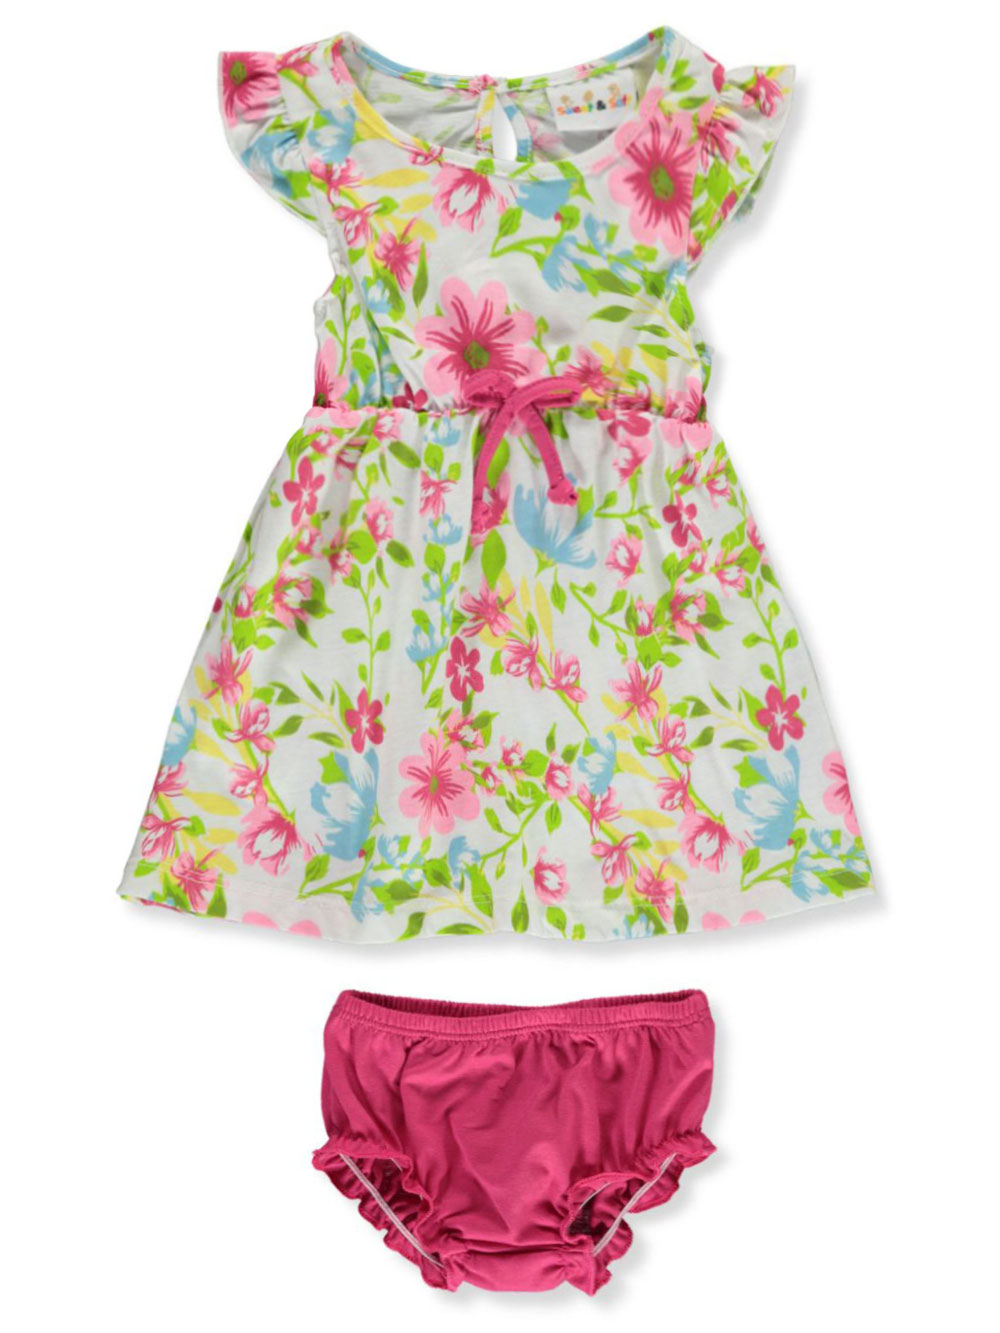 Pink and Multicolor Newborn Dresses